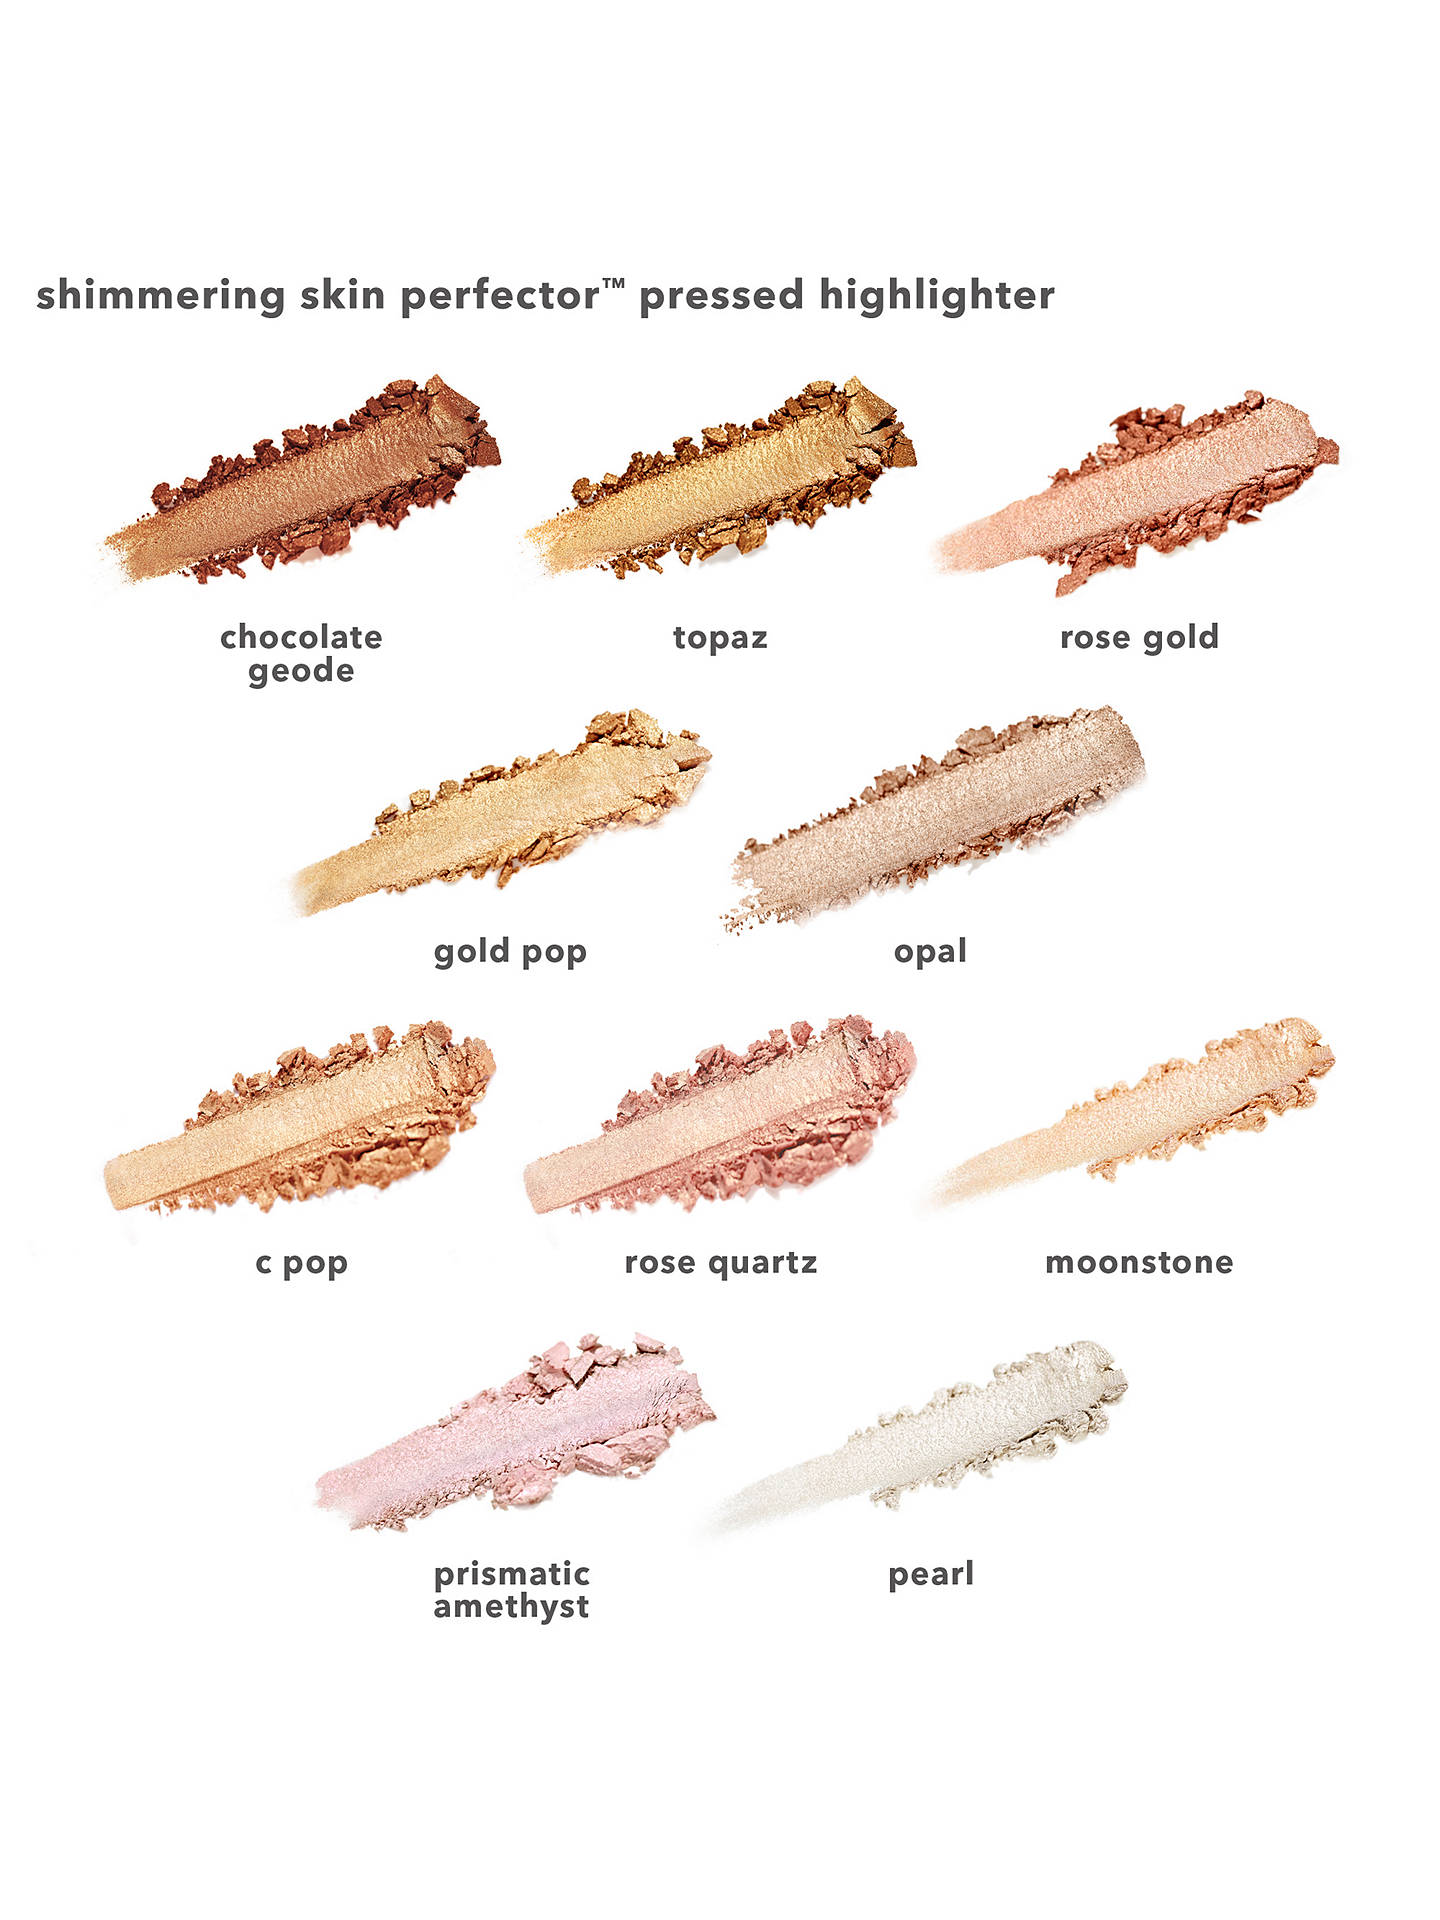 Buy BECCA Shimmering Skin Perfector™ Pressed Highlighter, Rose Gold Online at johnlewis.com